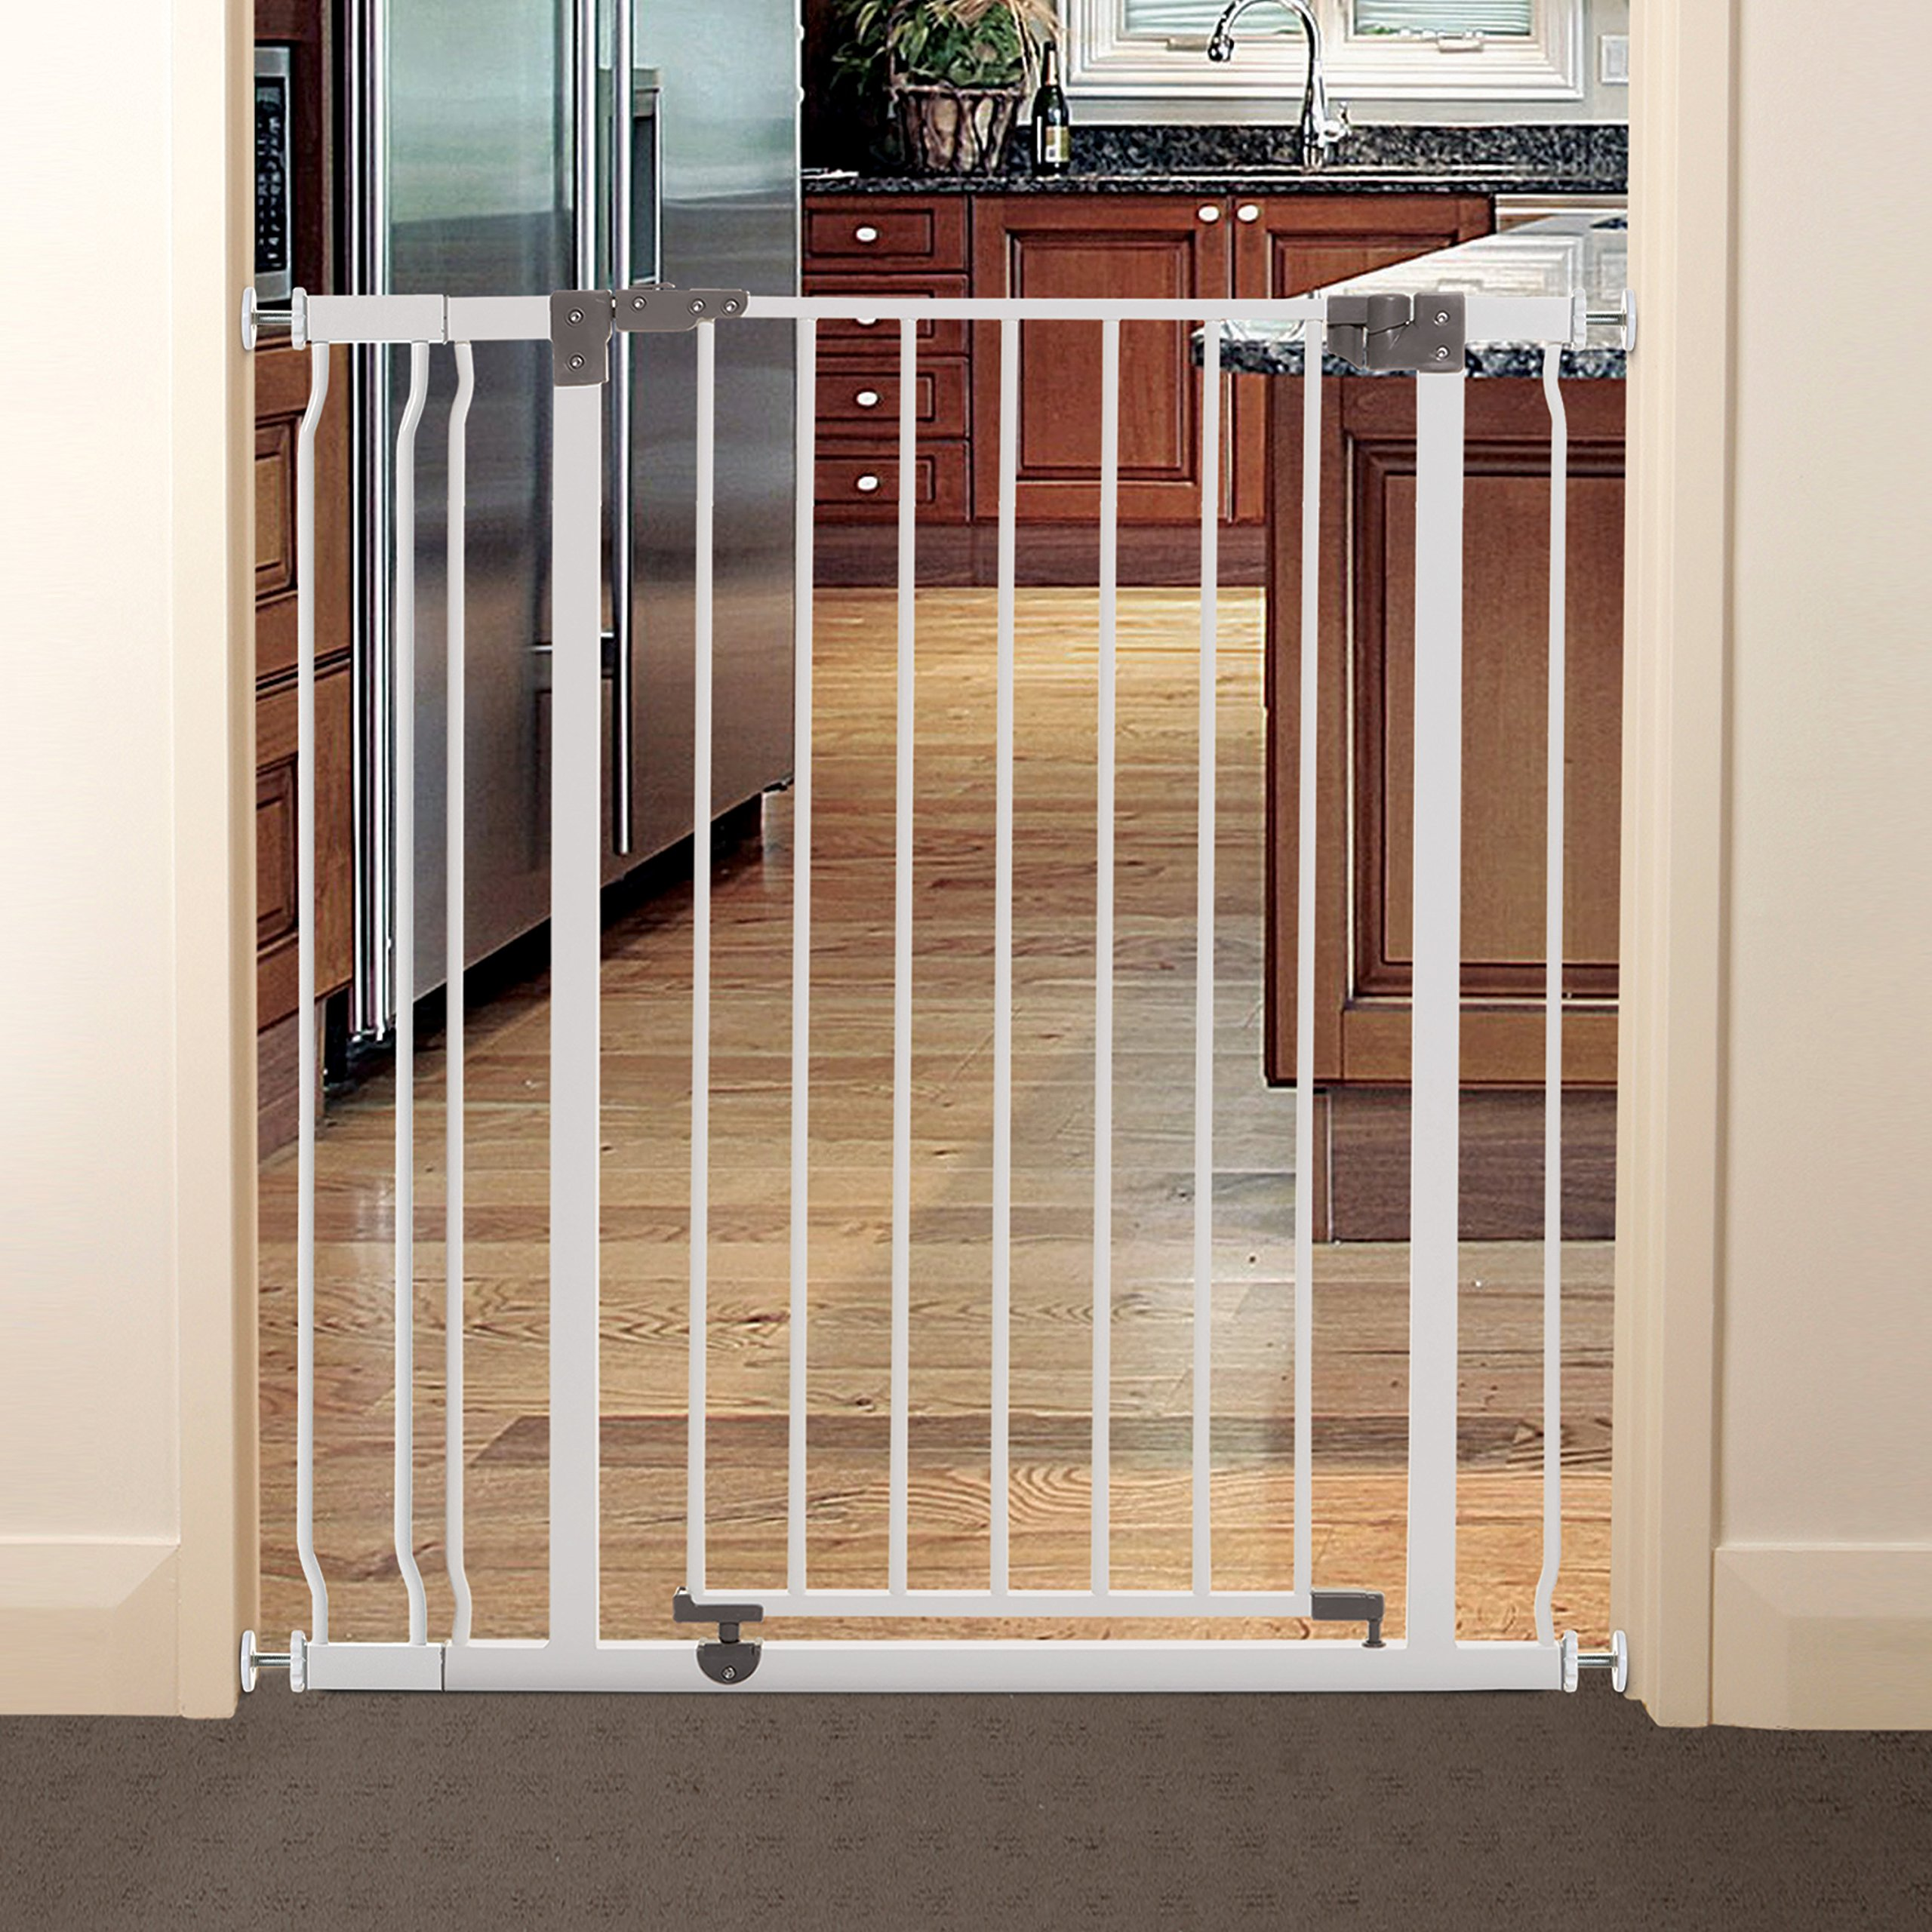 Dreambaby Liberty Tall Auto Close Security Gate w/ 3.5'' Extension by Dreambaby (Image #6)